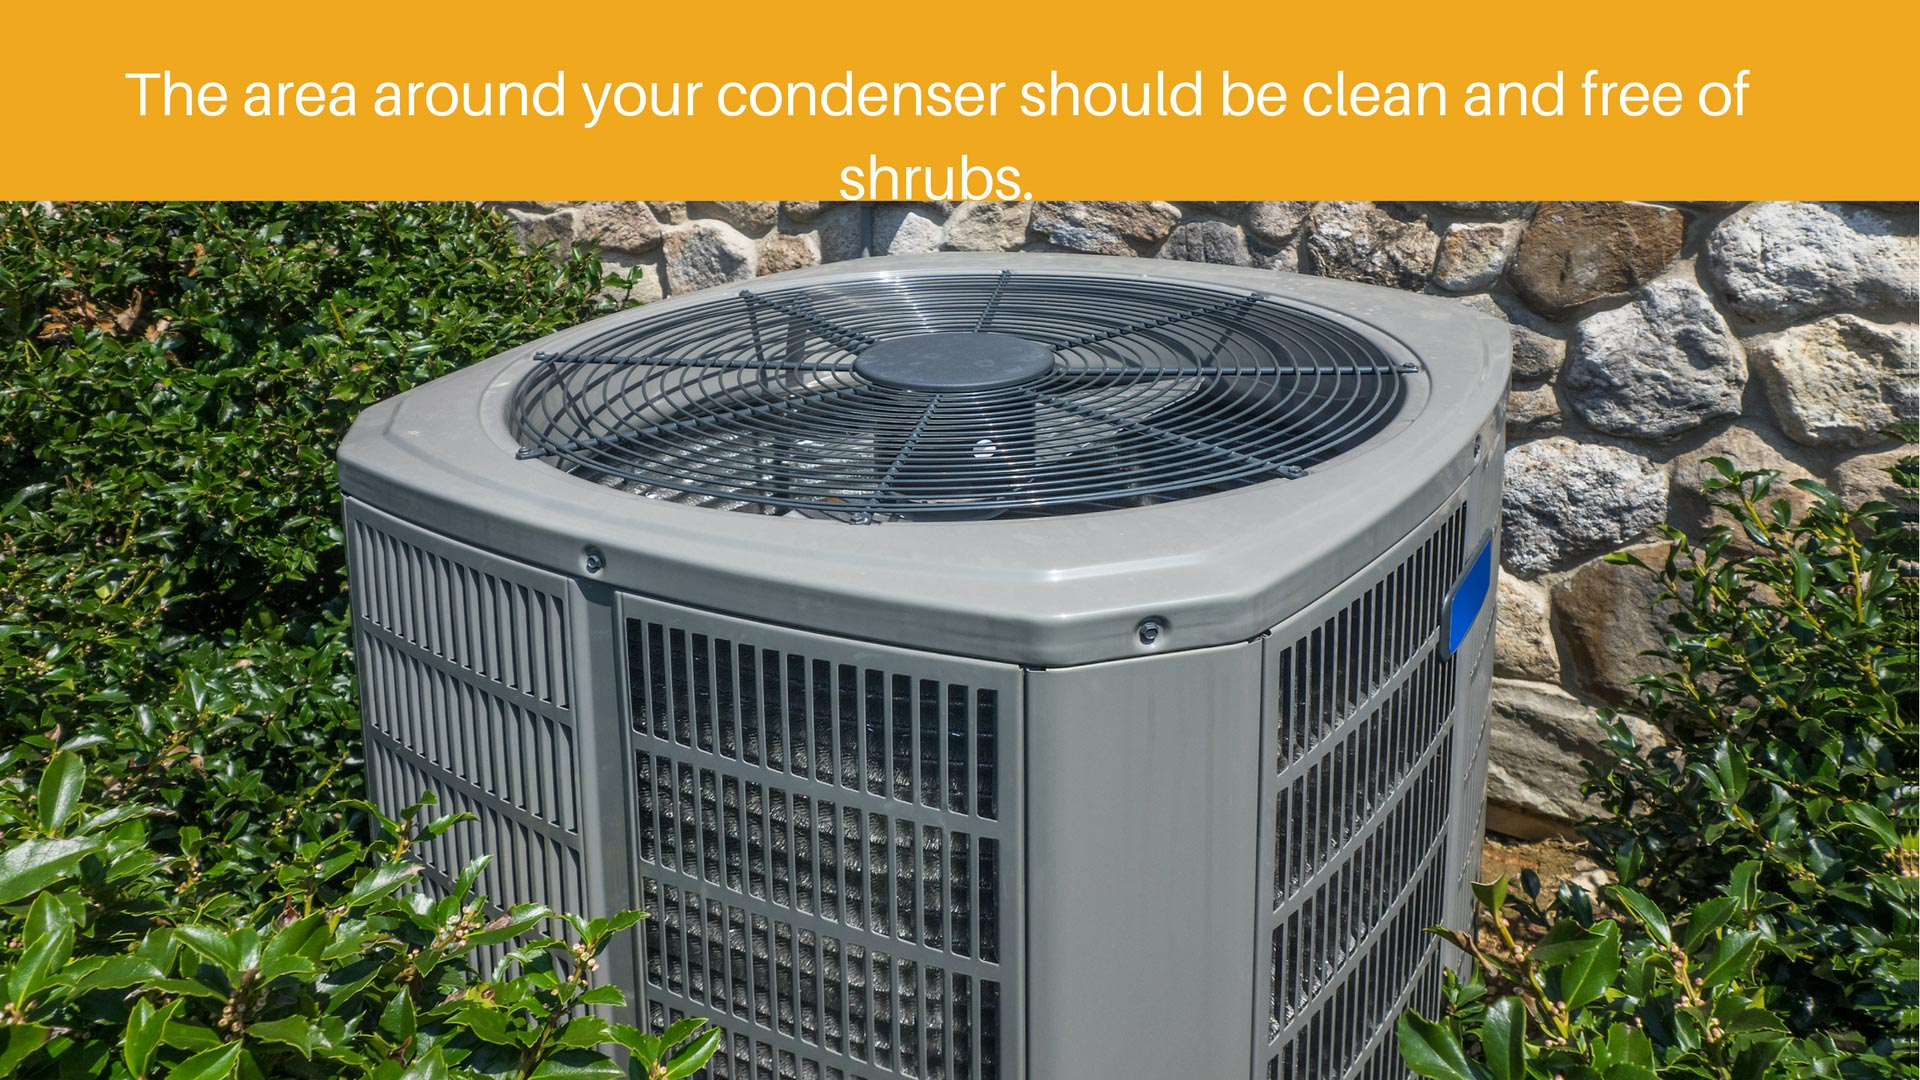 The-area-around-your-condenser-should-be-clean-and-free-of-shrubs